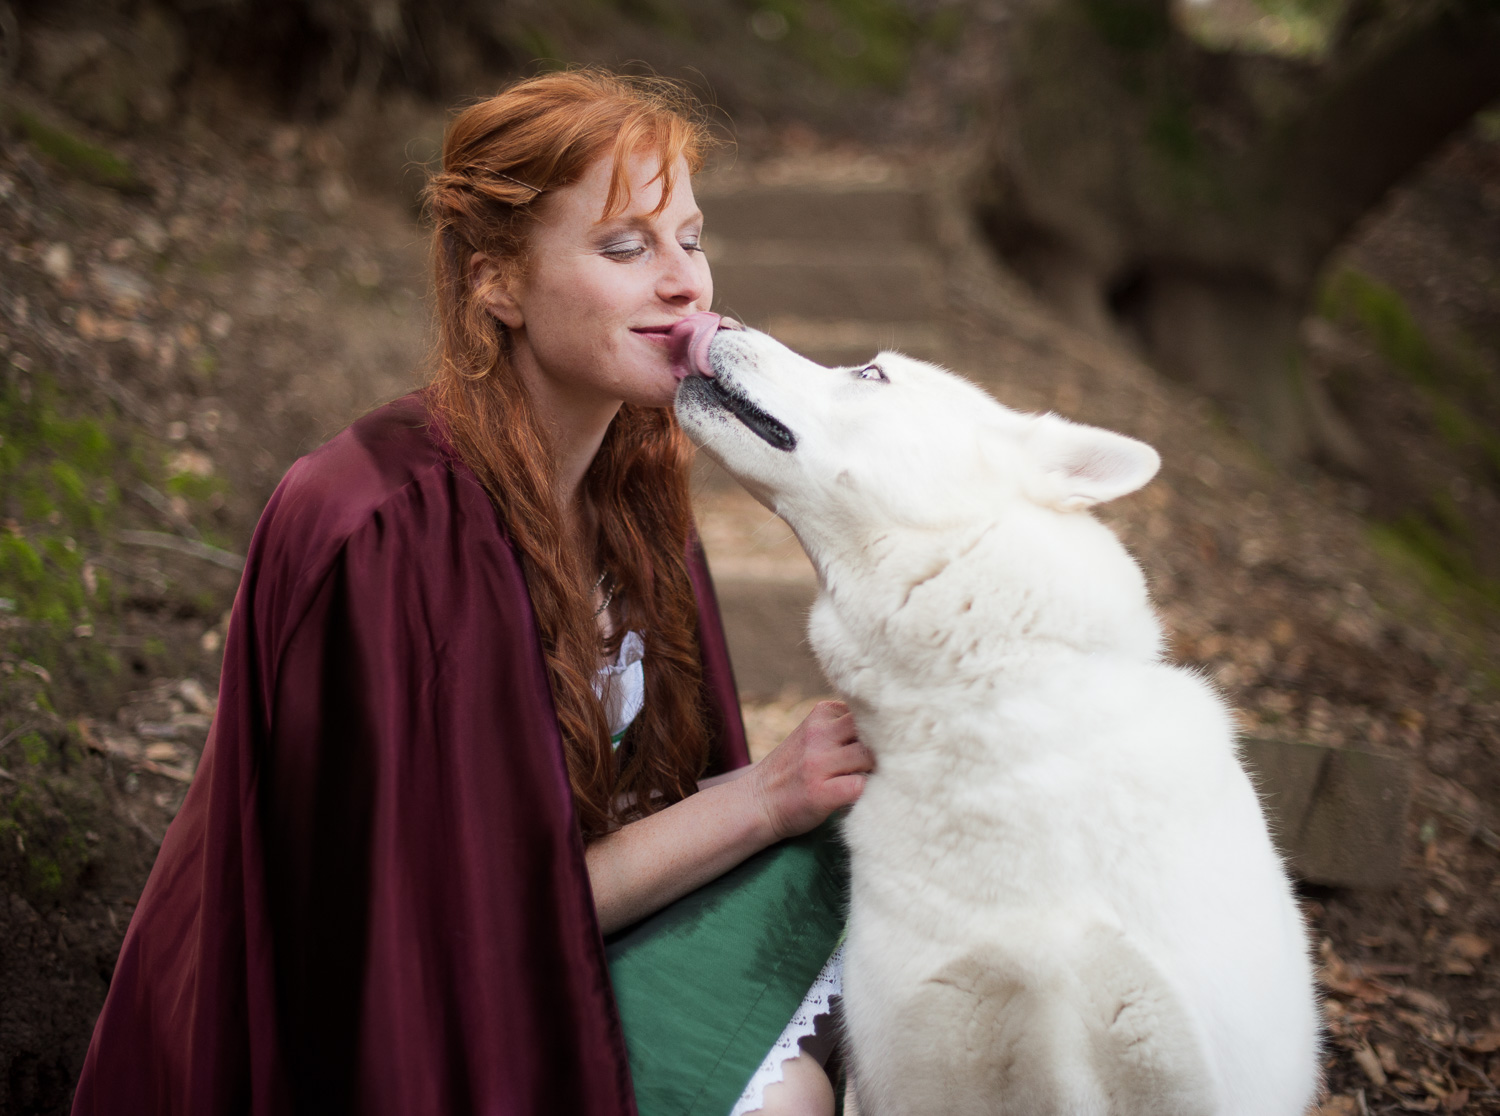 Red riding hood and the wolf // Conceptual Portraiture // Ashley Petersen Photo